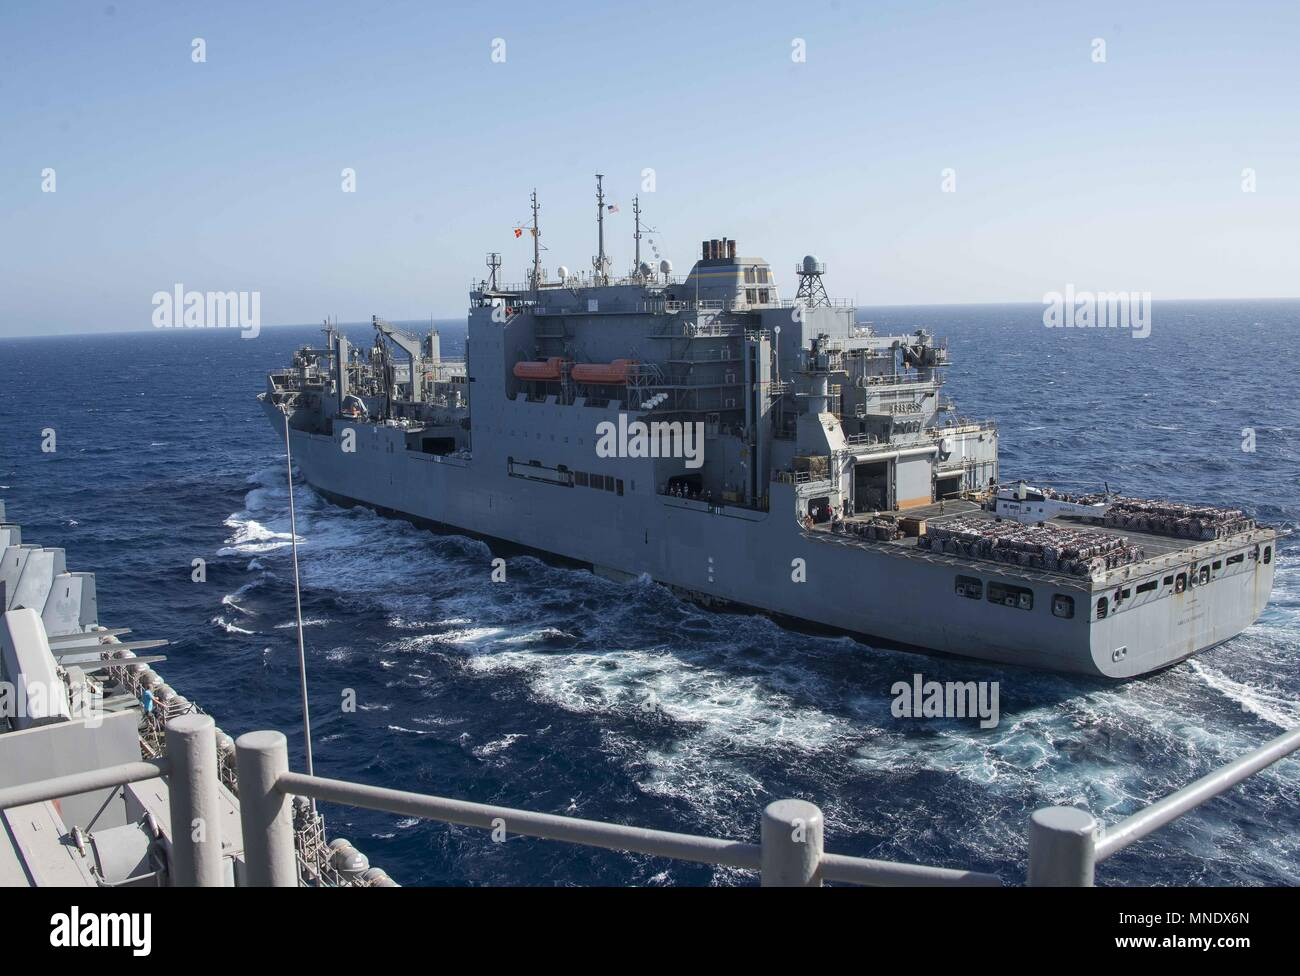 180515-N-AH771-0020 U.S. 5TH FLEET AREA OF OPERATIONS (May 15, 2018) The dry cargo and ammunition ship USNS Amelia Earhart (T-AKE 6) prepares to come alongside the Wasp-class amphibious assault ship USS Iwo Jima (LHD 7) during a replenishment-at-sea, May 15, 2018, May 15, 2018. Iwo Jima, homeported in Mayport, Fla. is on deployment to the U.S. 5th Fleet area of operations in support of maritime security operations to reassure allies and partners, and preserve the freedom of navigation and the free flow of commerce in the region. (U.S. Navy photo by Mass Communication Specialist 3rd Class Danie Stock Photo